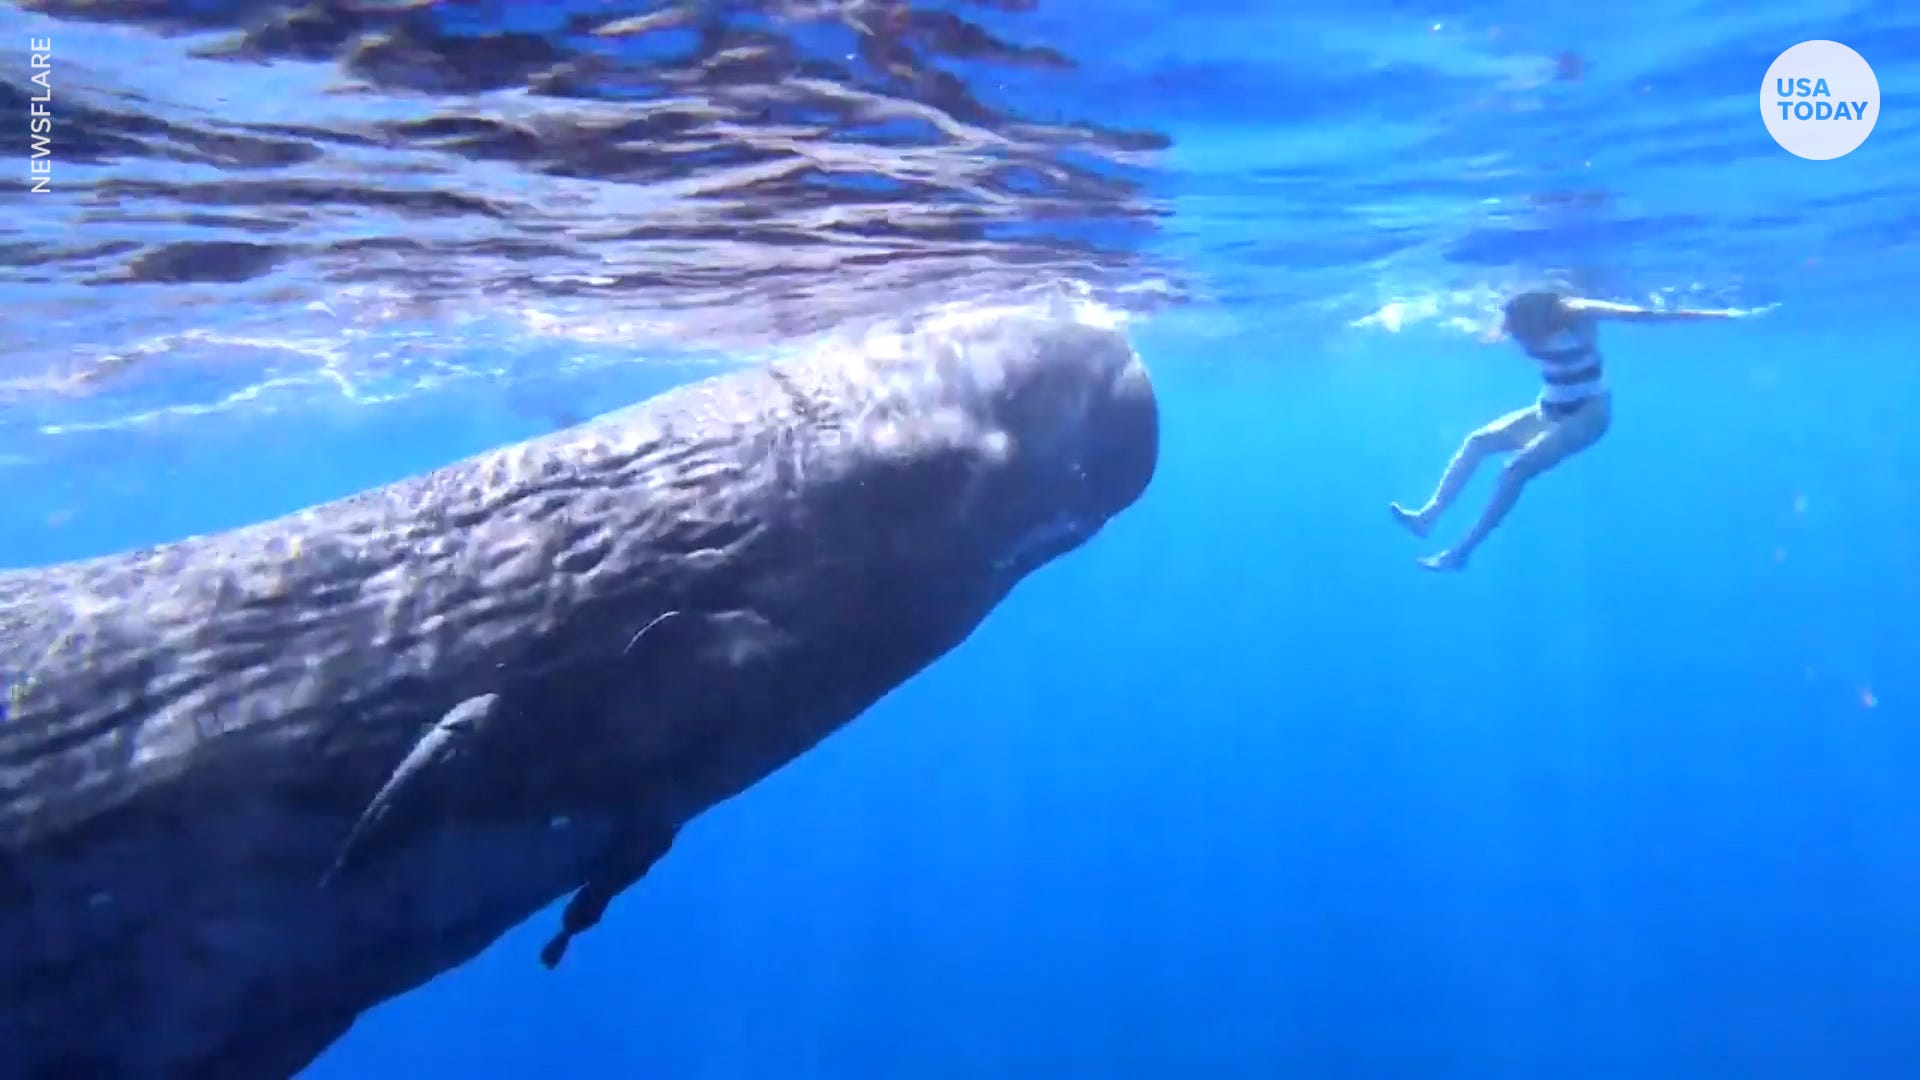 Instagram influencer swims with gigantic baby sperm whale in Indian Ocean